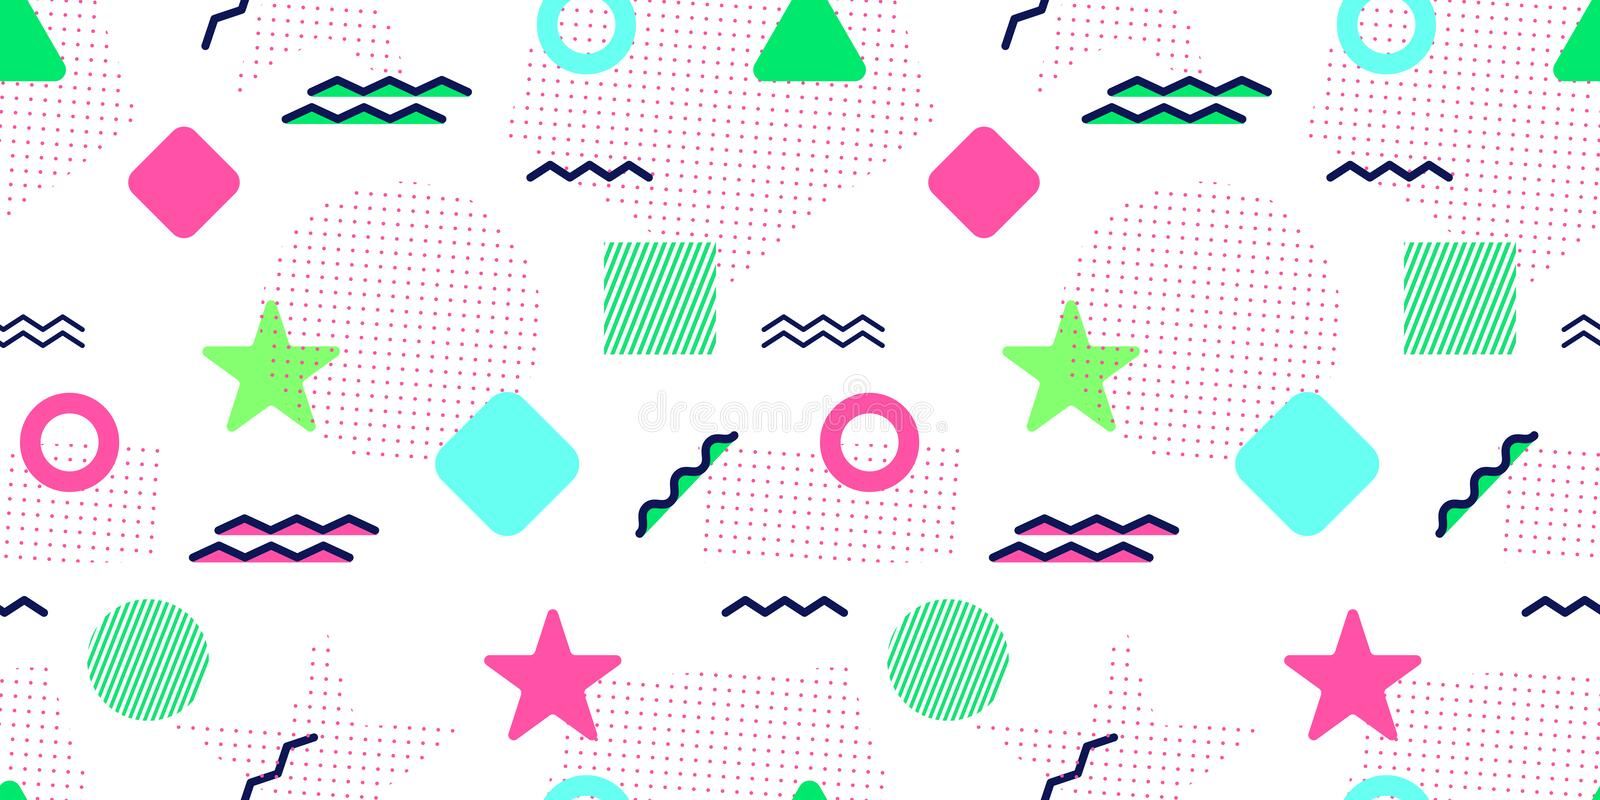 Memphis style vector seamless pattern. Abstract background with trendy geometric elements. Colorful graphic shapes. Modern repeate royalty free illustration